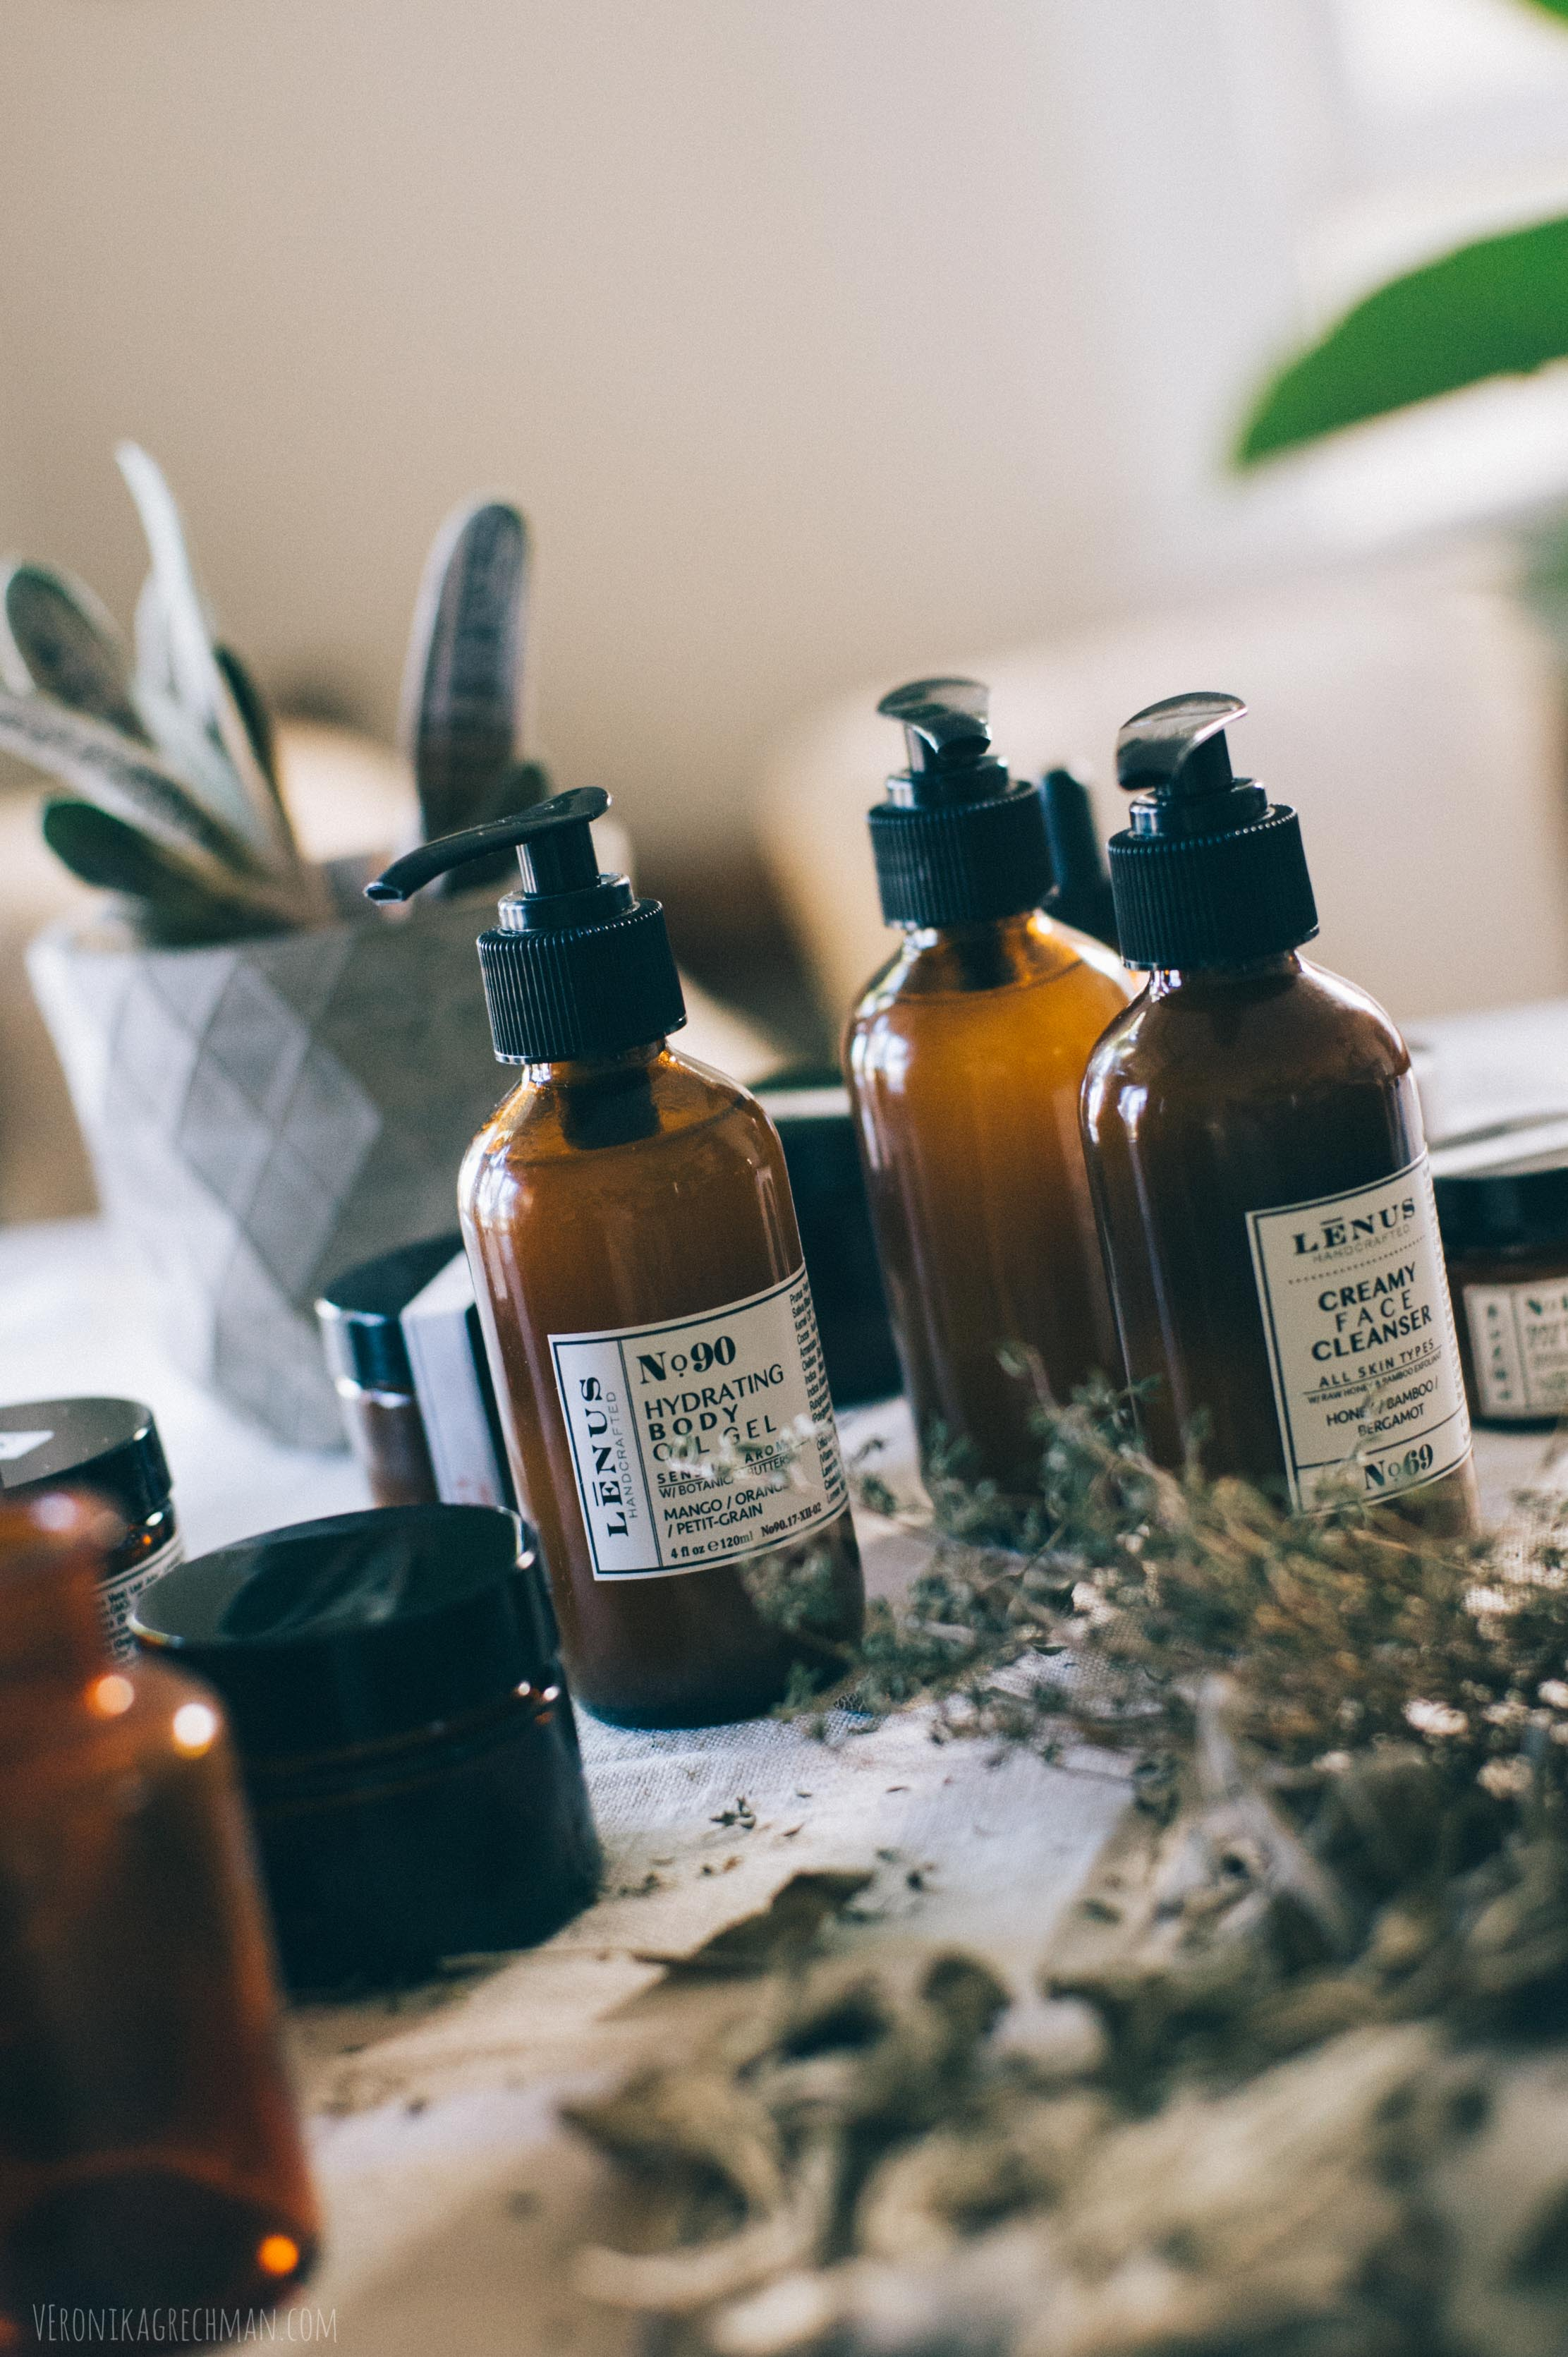 Lenus Handcrafted skincare natural beauty products San Diego California